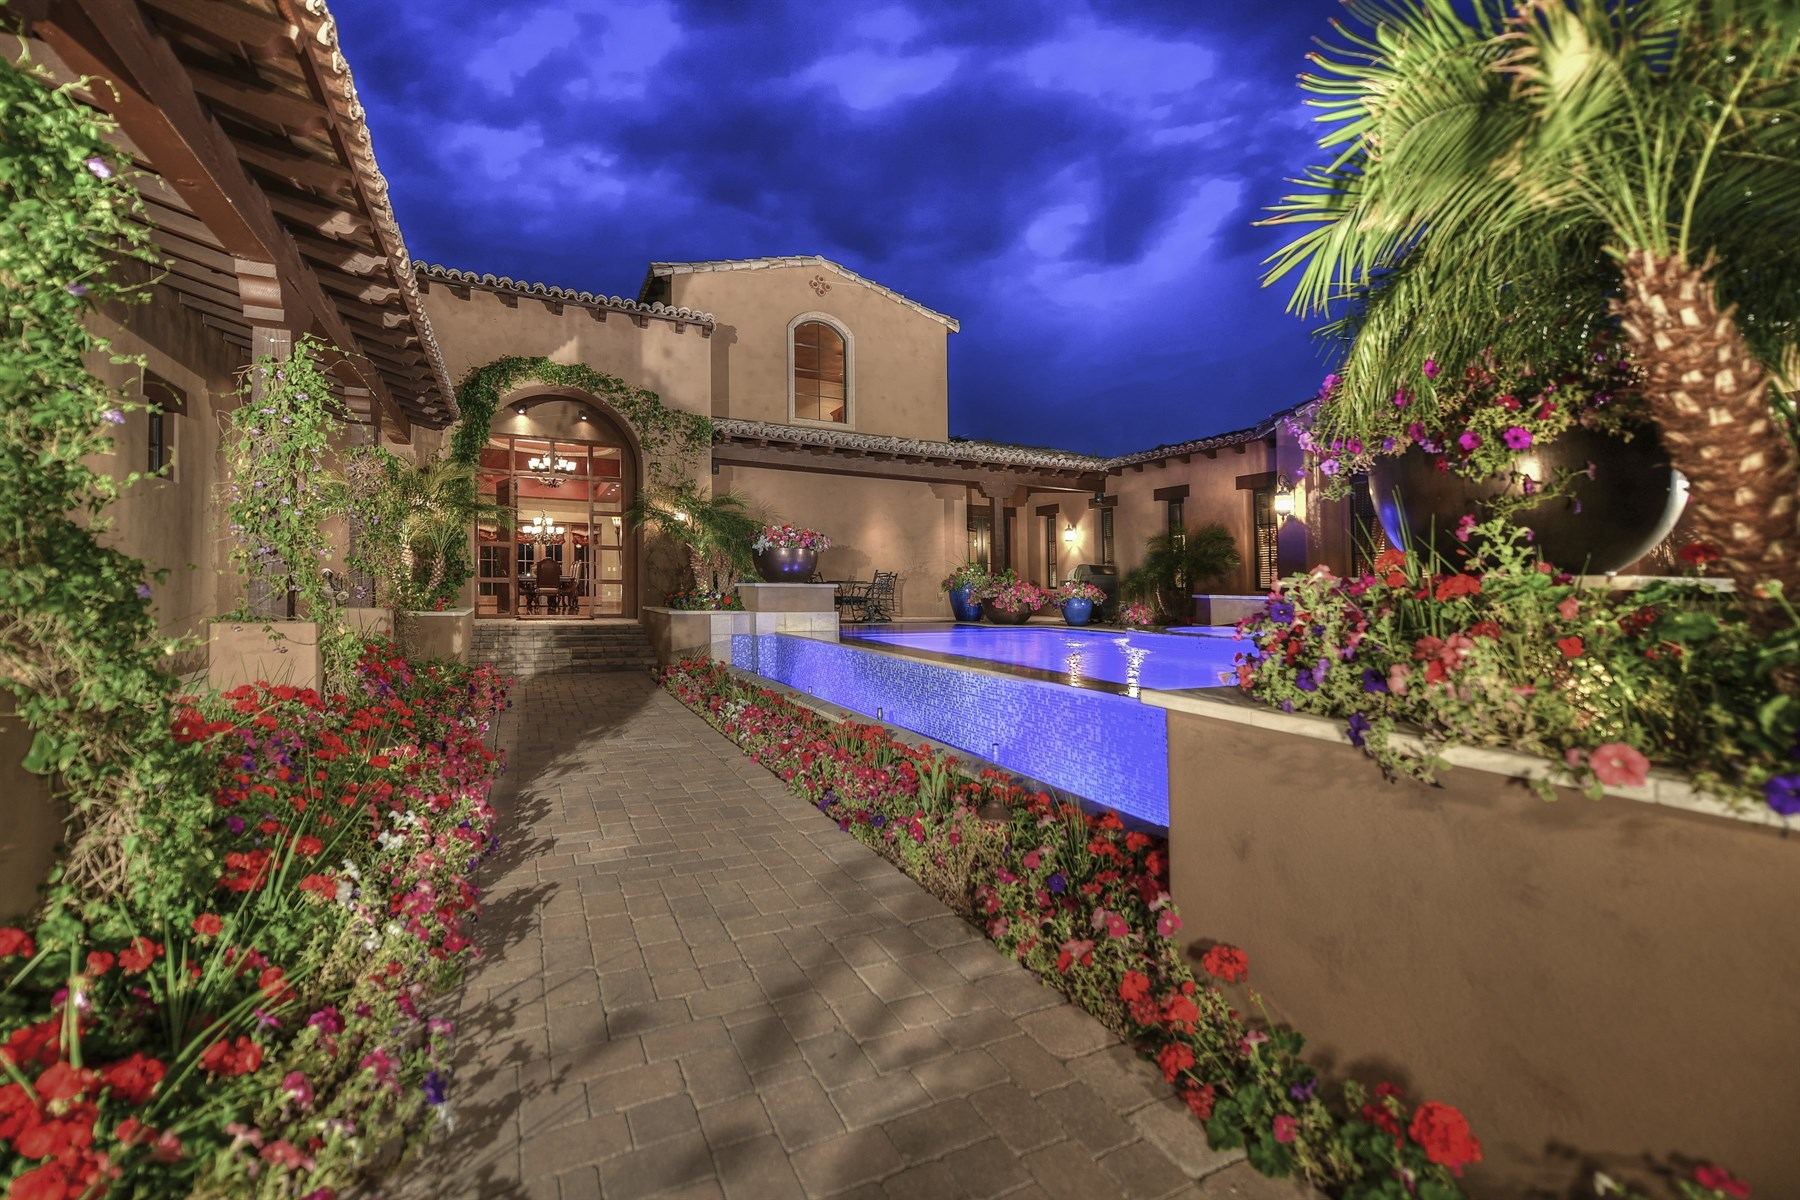 Single Family Home for Sale at Enchanting Spanish-inspired architecture home 7315 E Lower Wash Pass Scottsdale, Arizona, 85266 United States